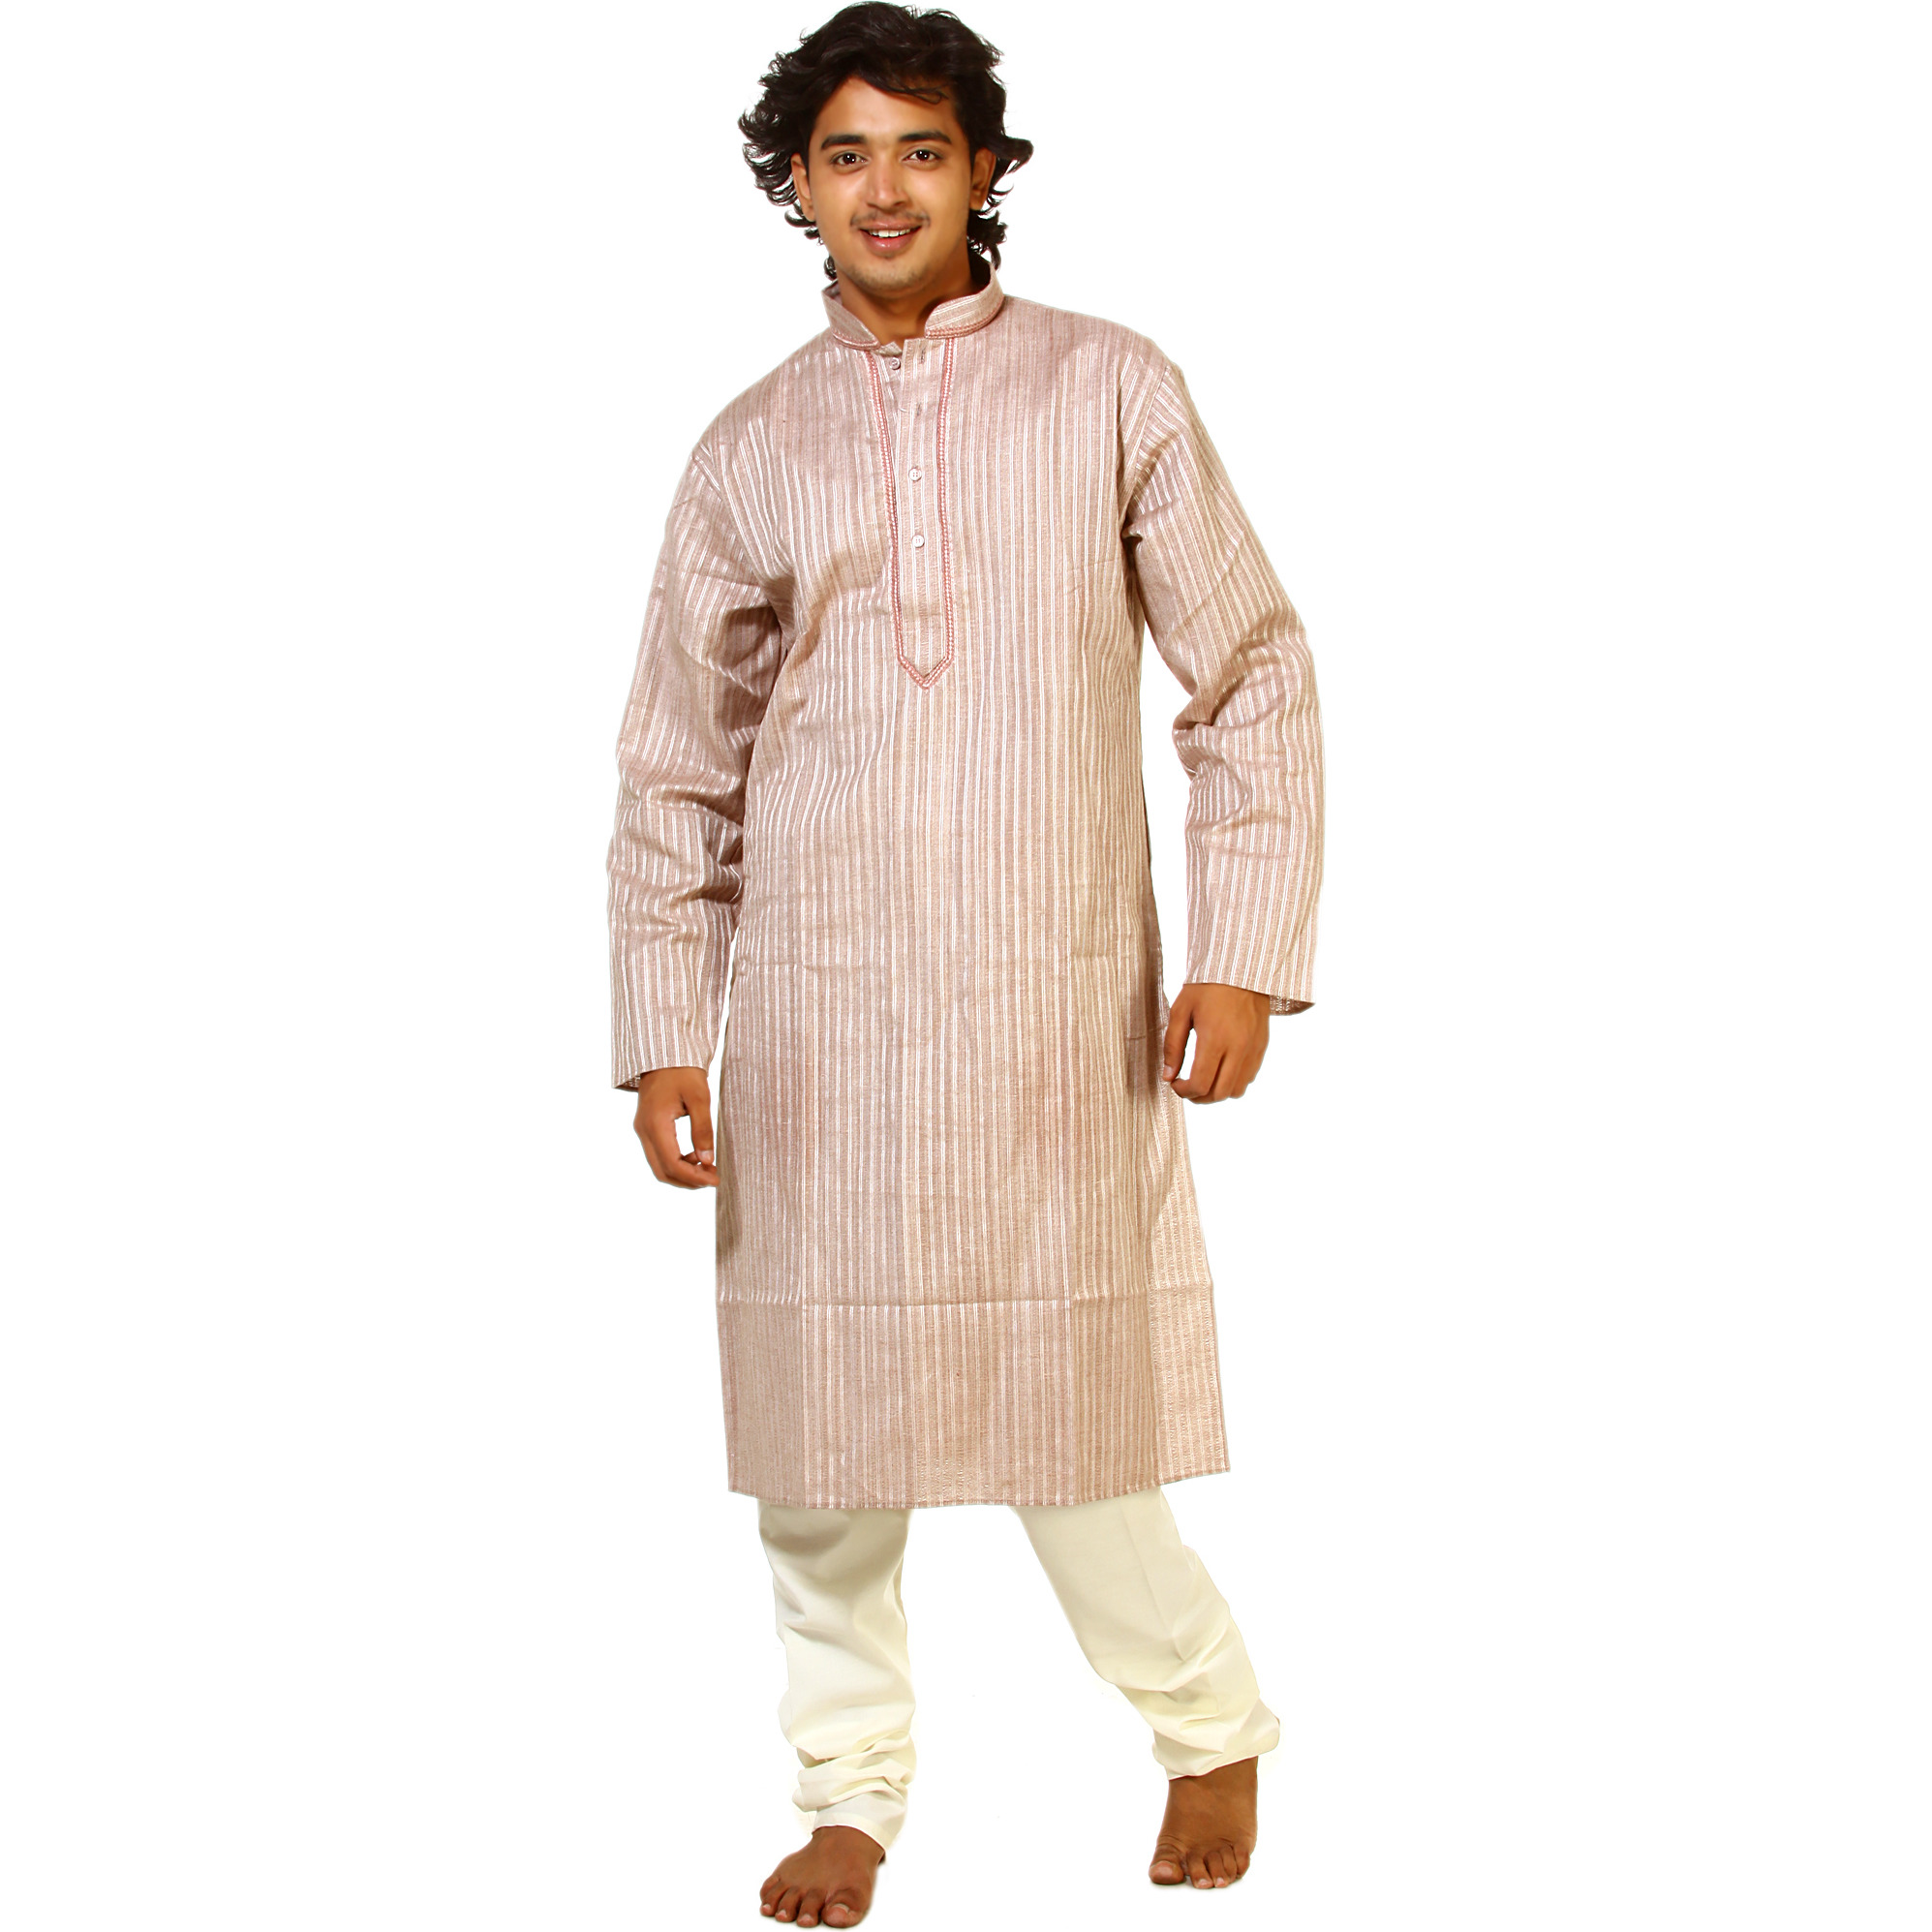 Shadow-Mauve Kurta Pajama with Embroidery on Neck and All-Over Woven Stripes